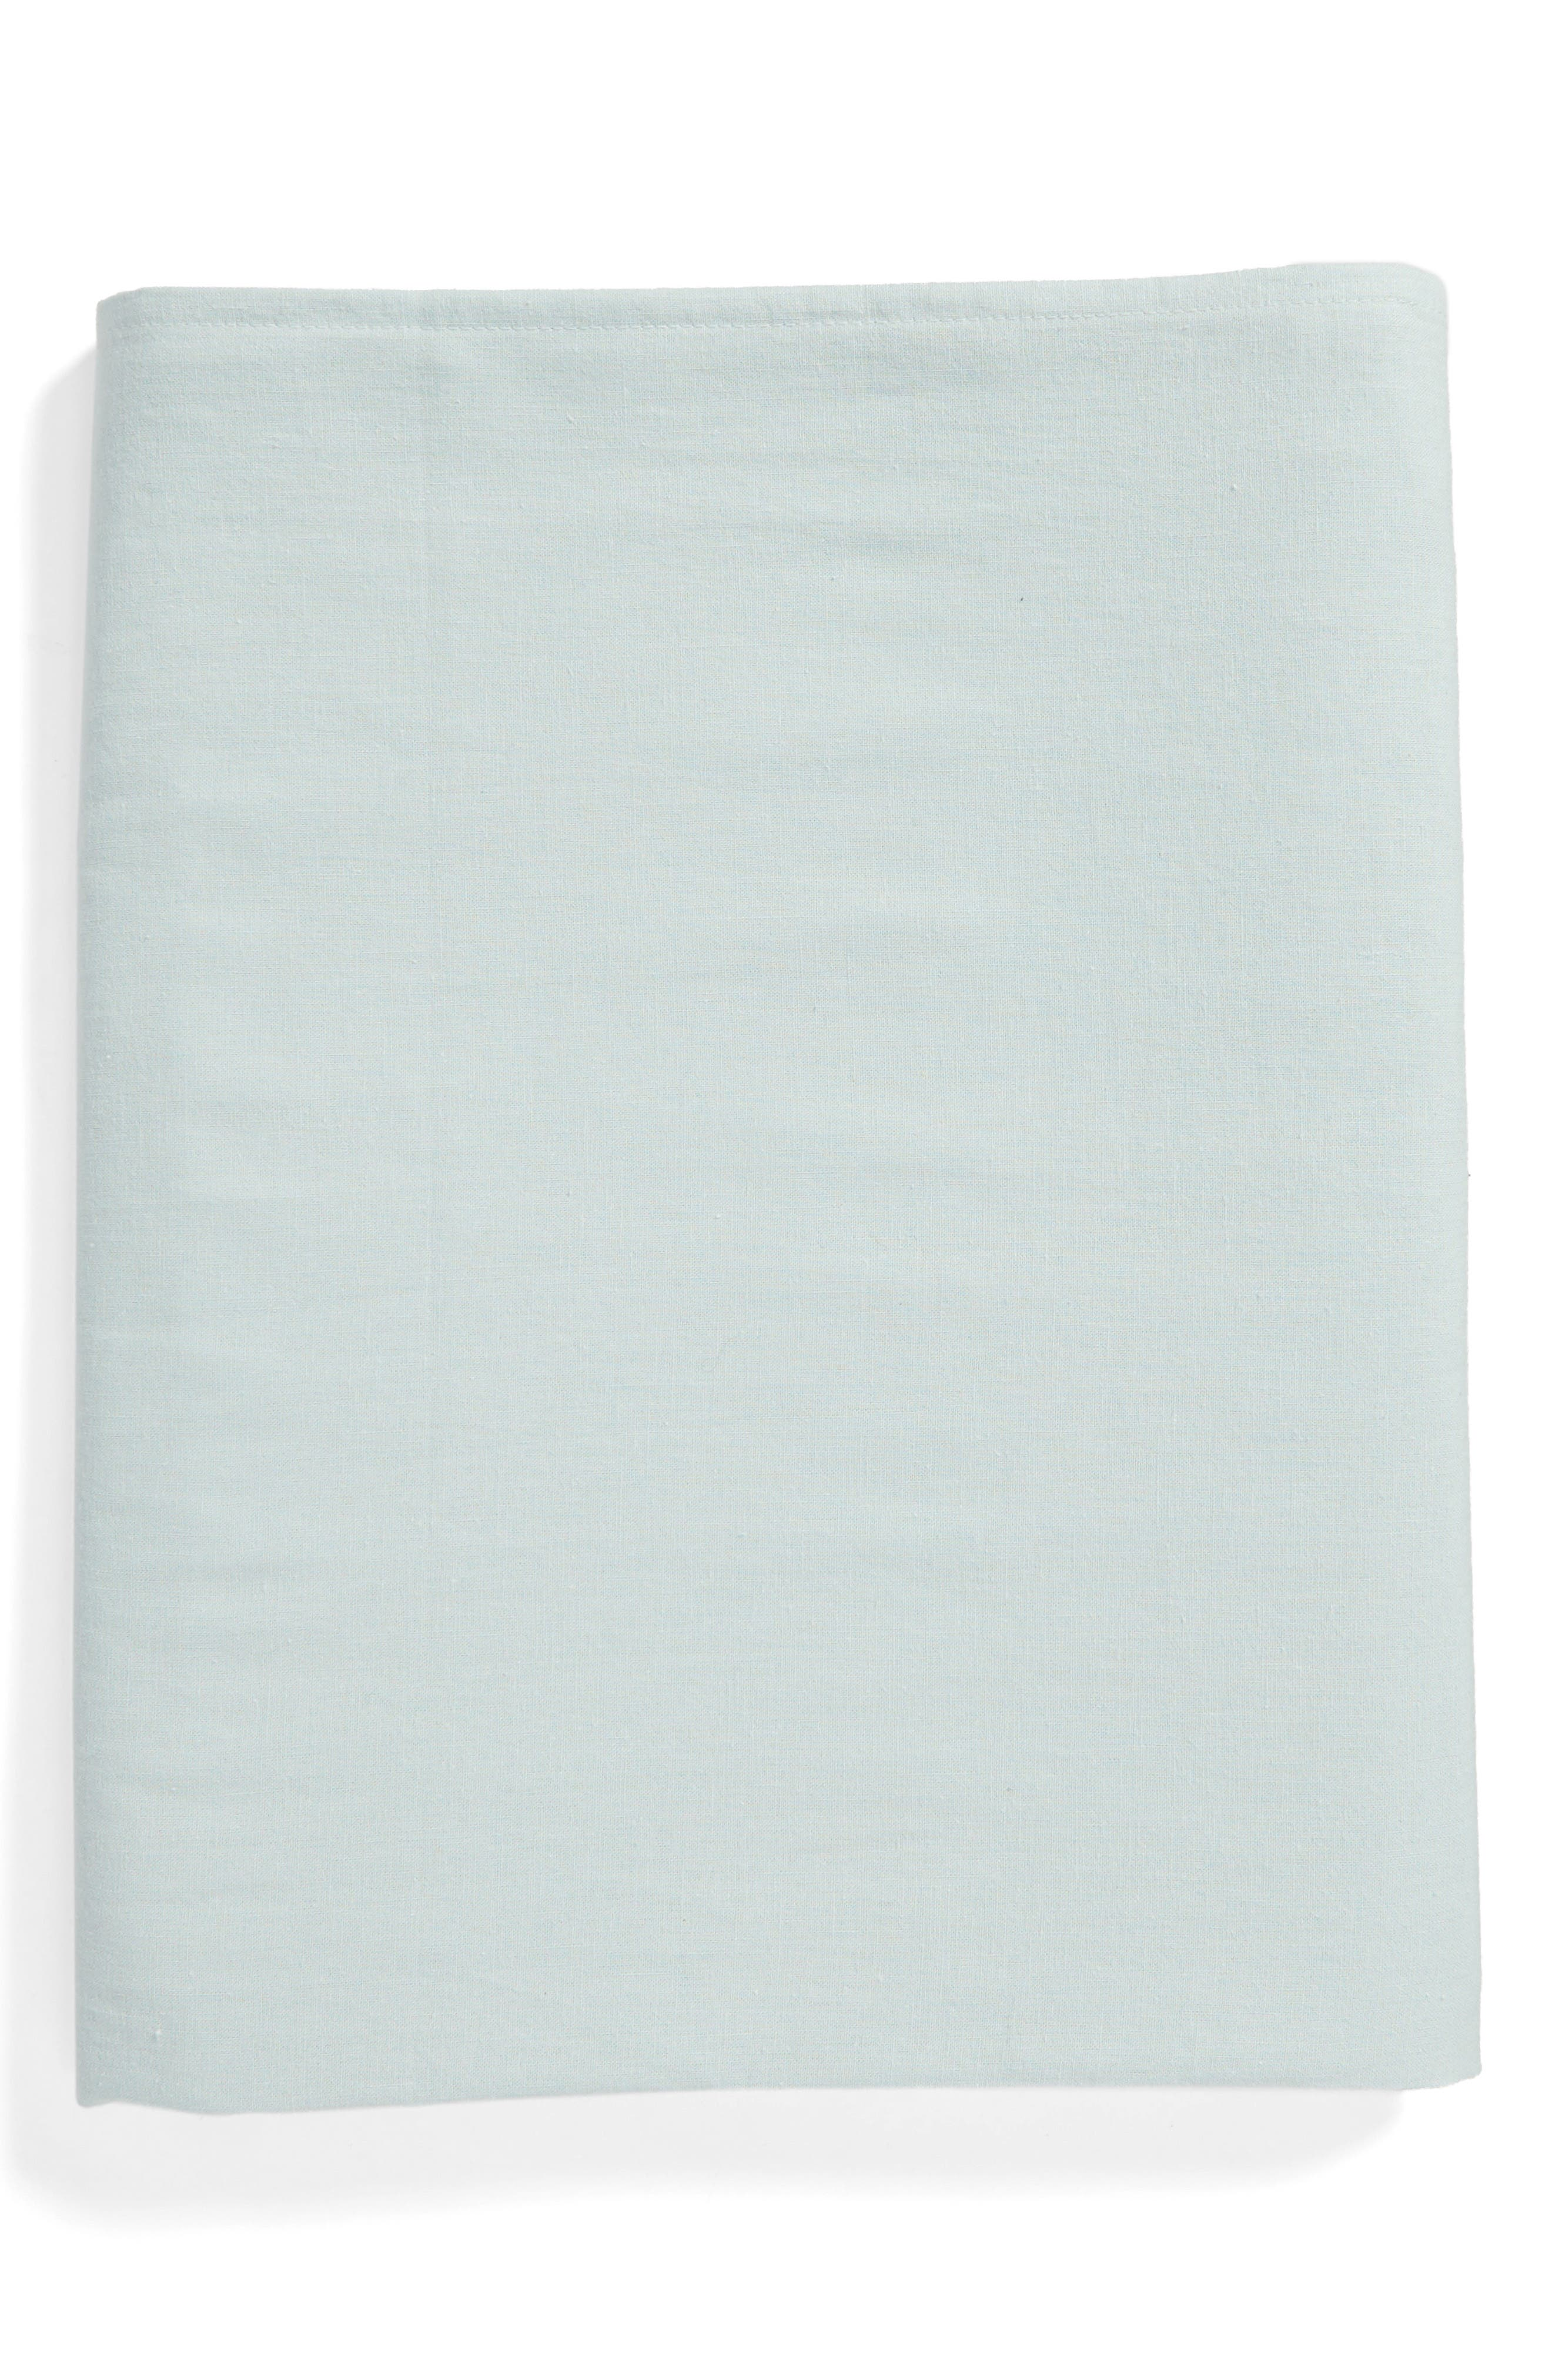 Washed Linen Tablecloth,                         Main,                         color, Spa Green